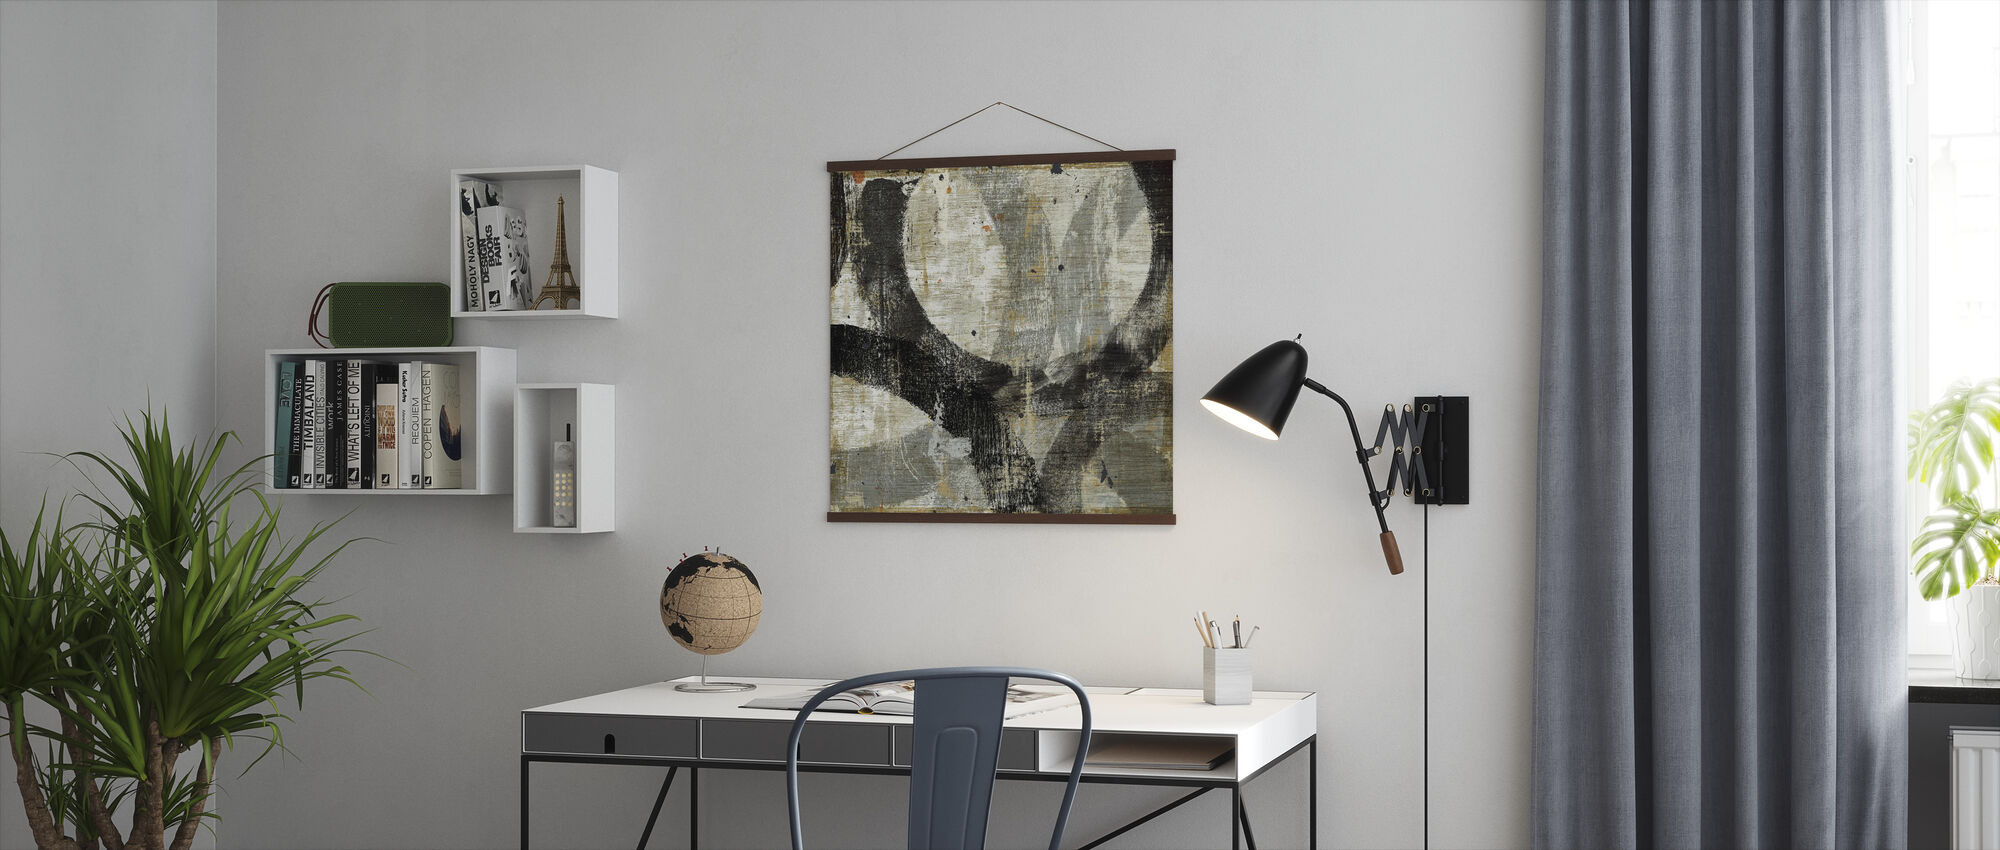 Geometric Abstract II - Poster - Office